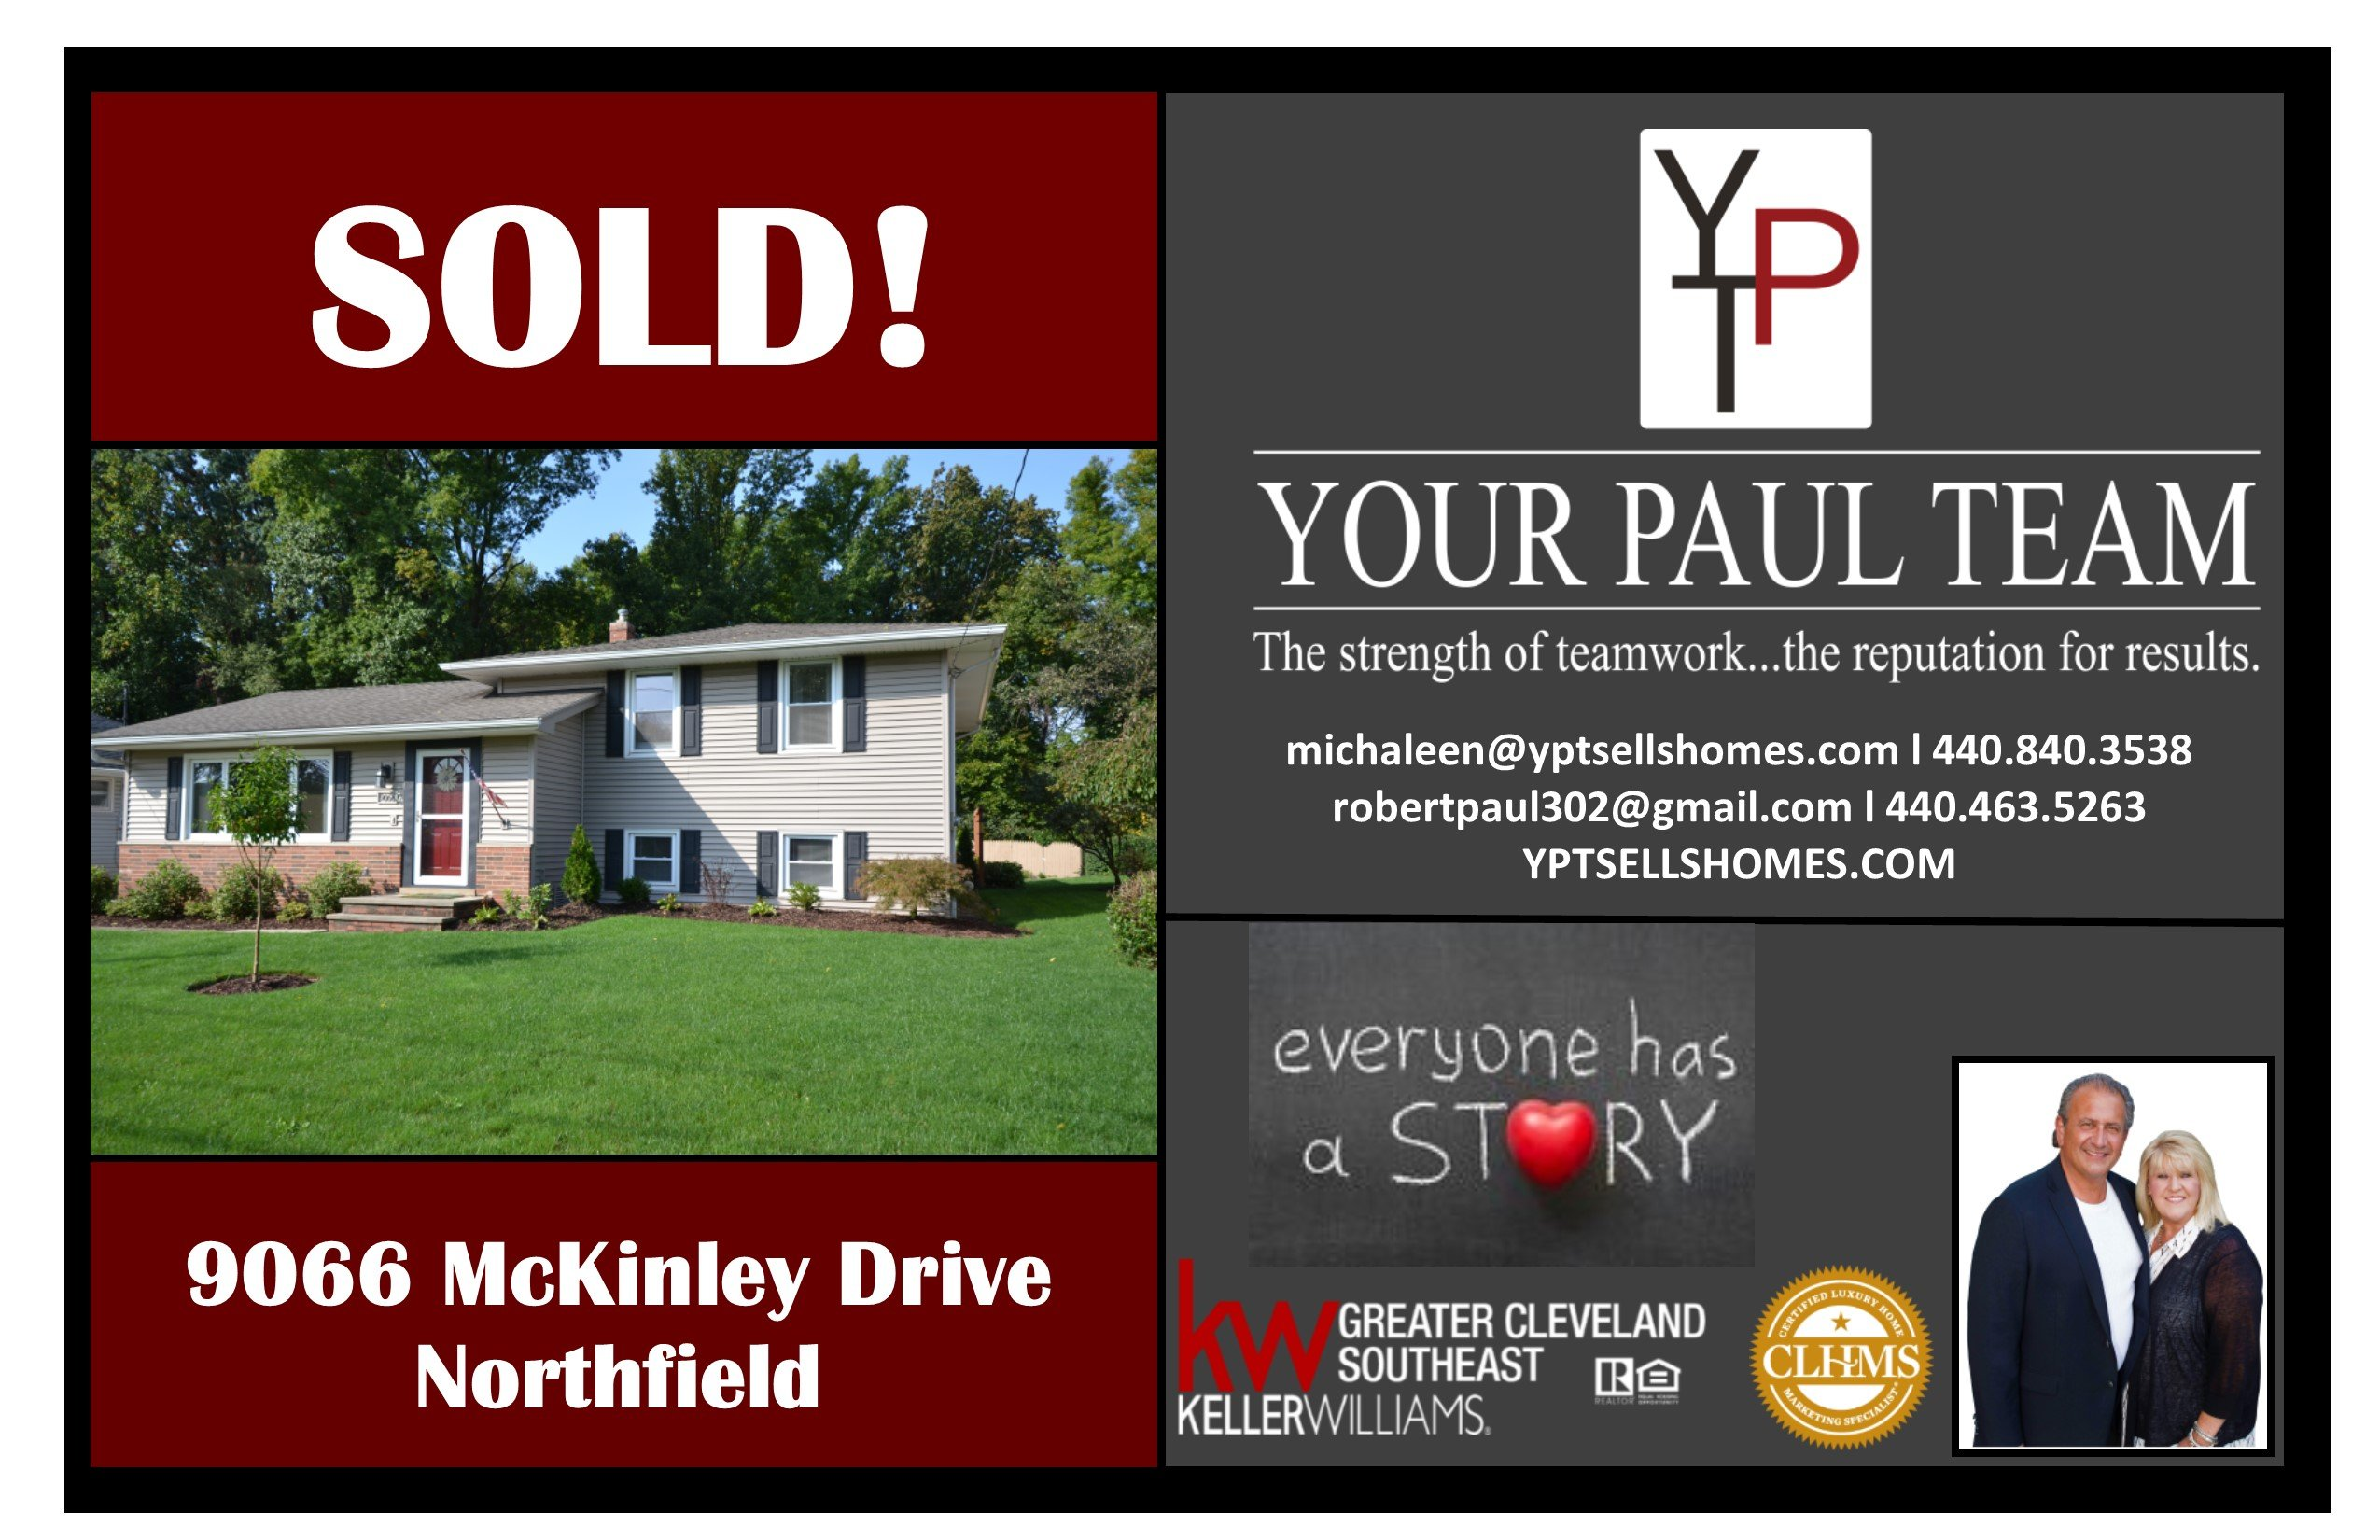 Another Listing SOLD By Your Paul Team!  9066 McKinley Drive, Northfield